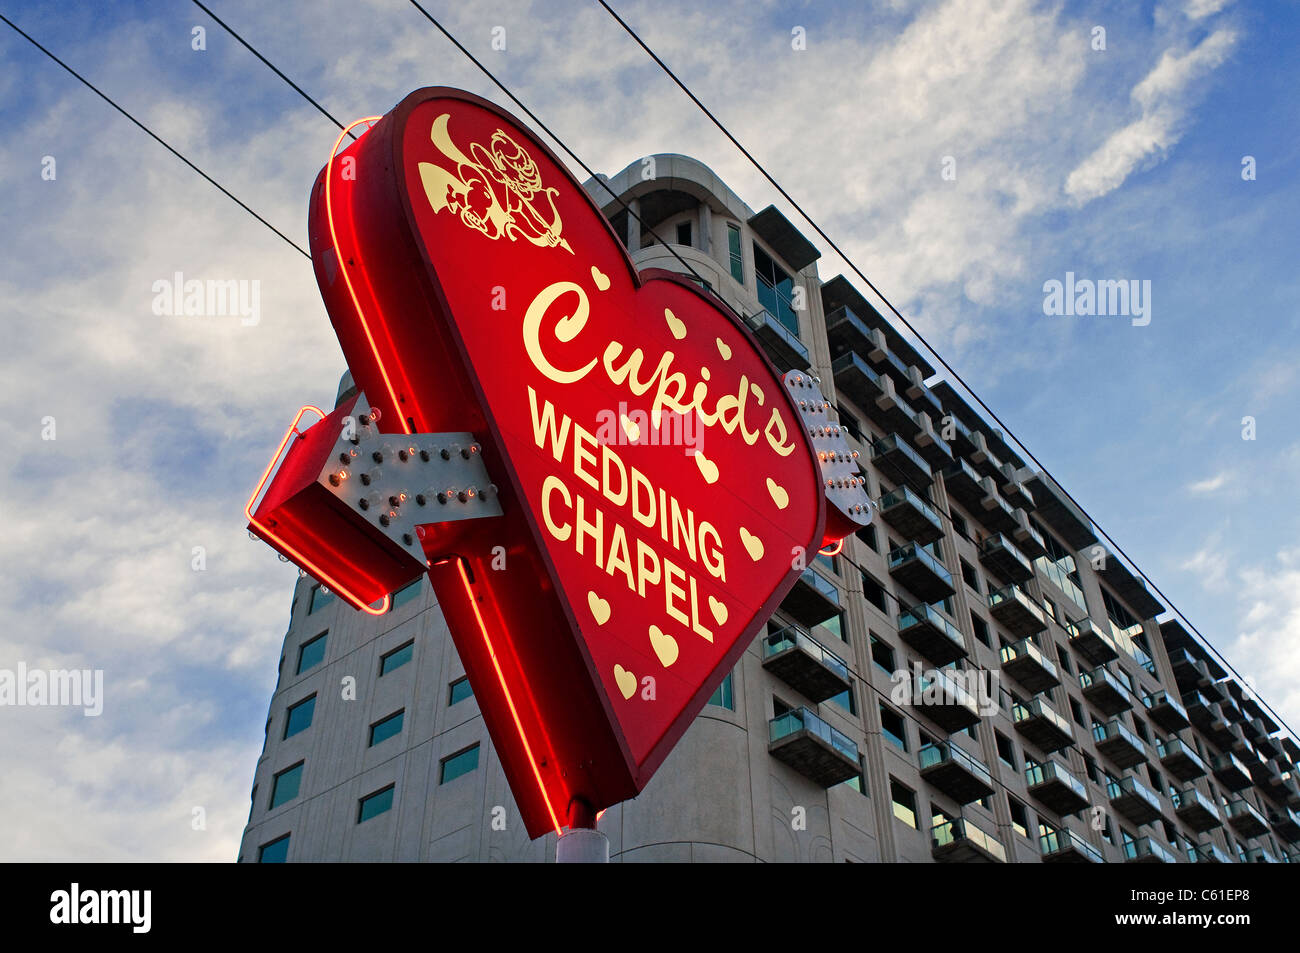 Wedding Chapel Cupids Las Vegas NV Nevada Stock Foto